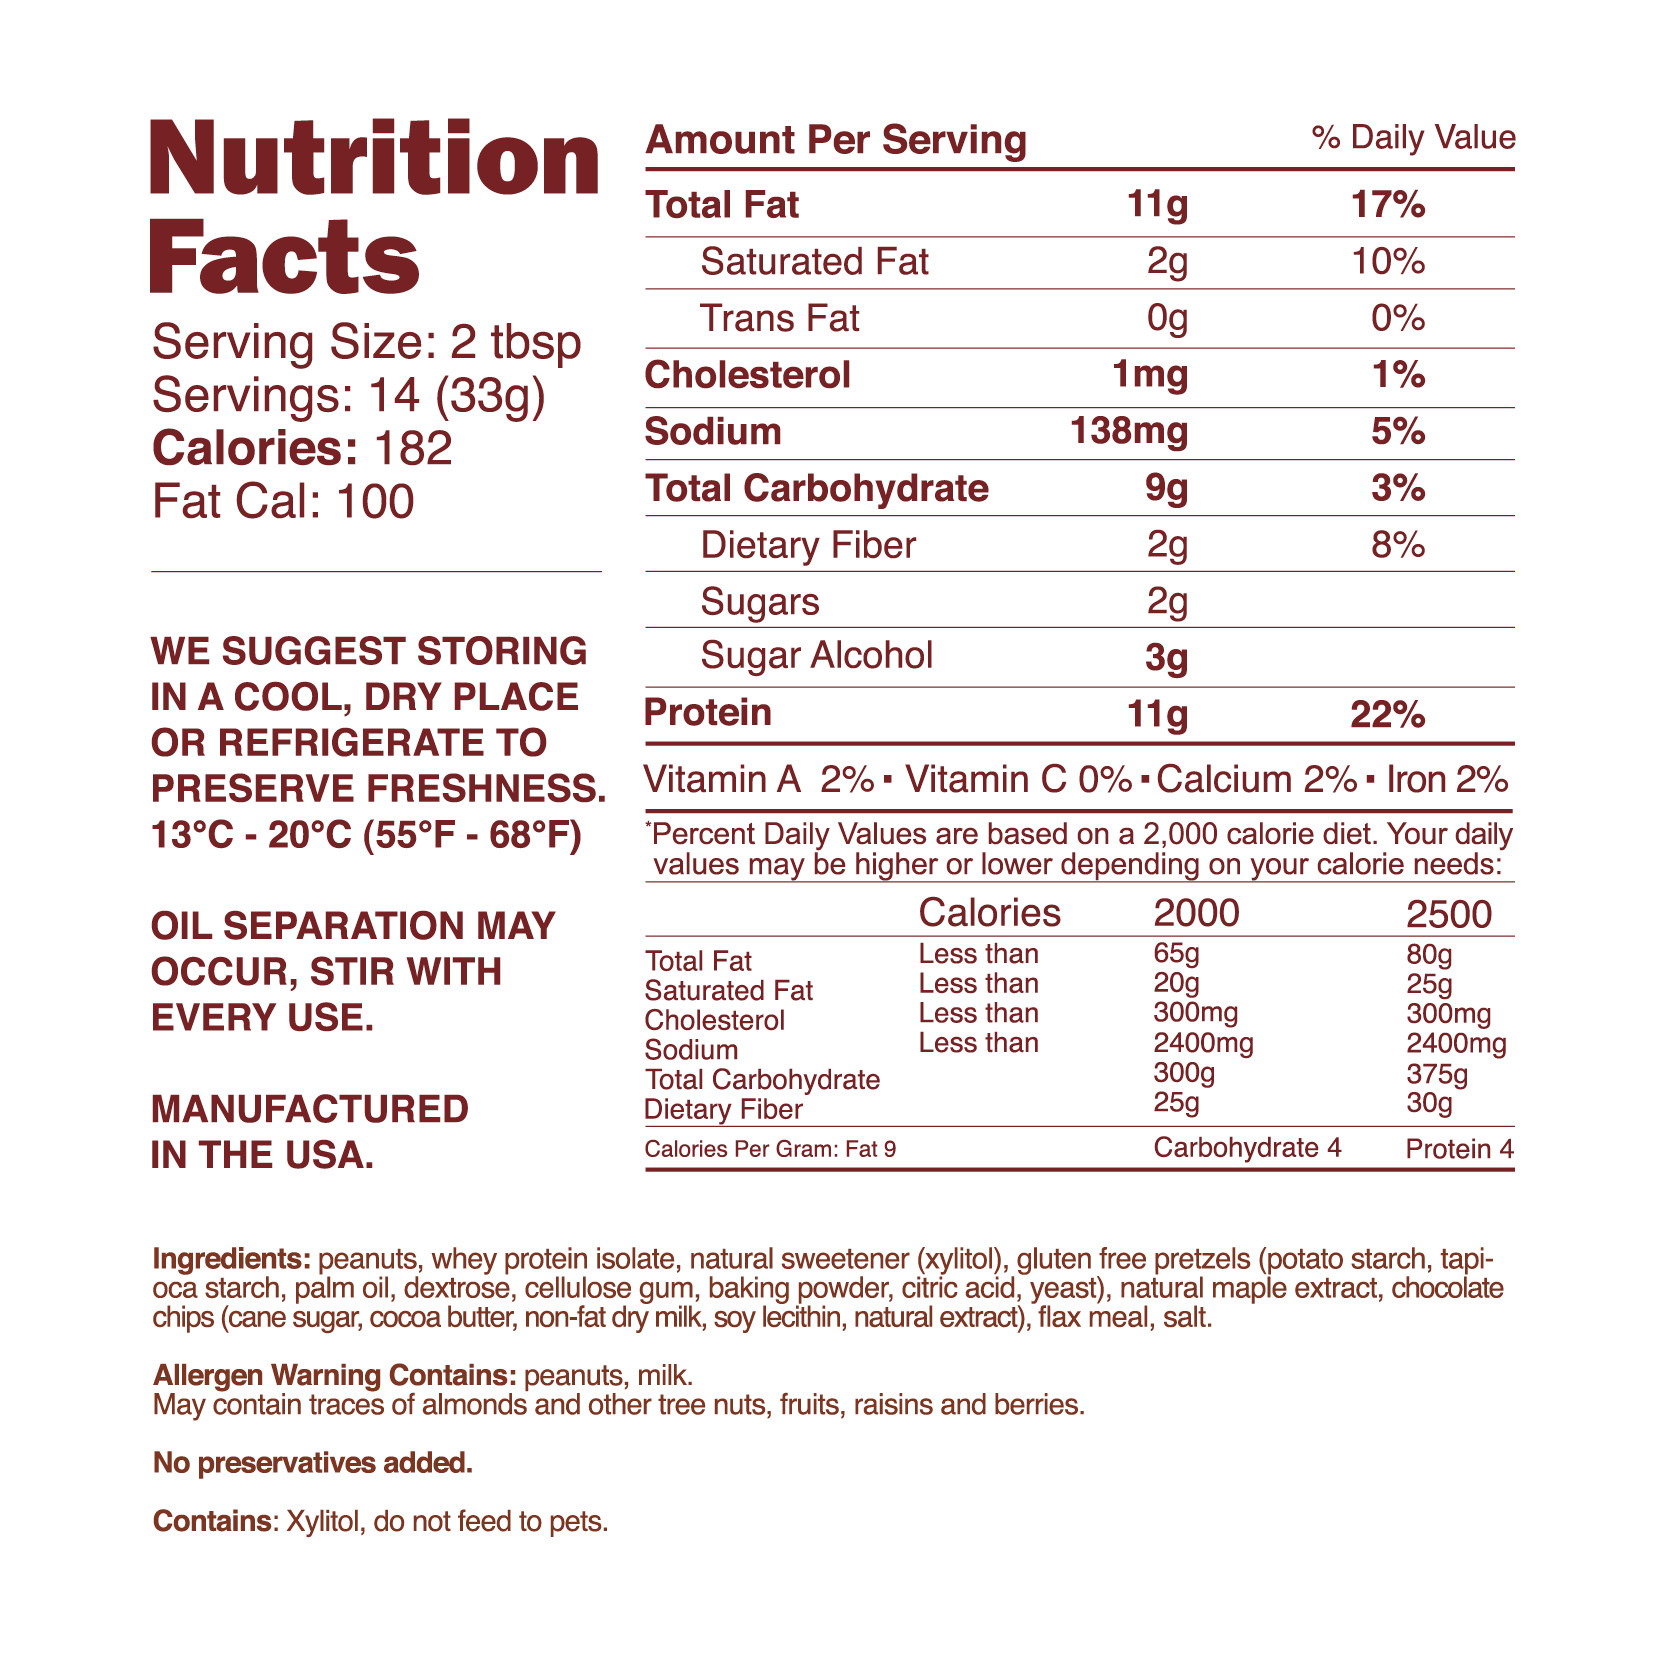 nutrition-facts-chocolate-Maple-pretxel-peanut-butter-nuts-n-more